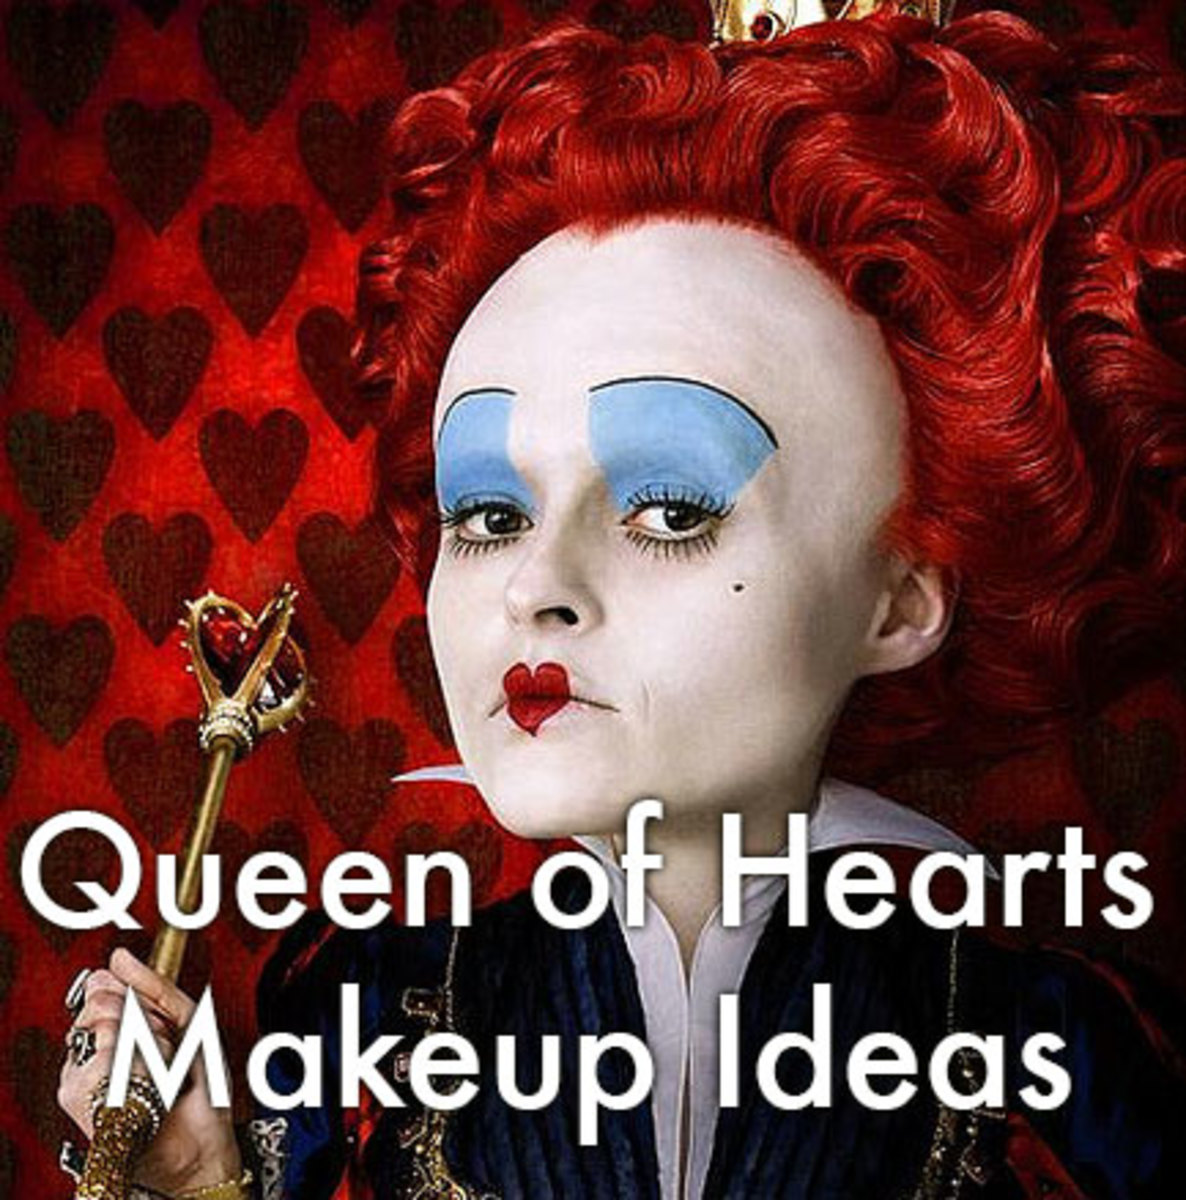 Makeup ideas and tutorials for Tim Burton's Queen of Hearts